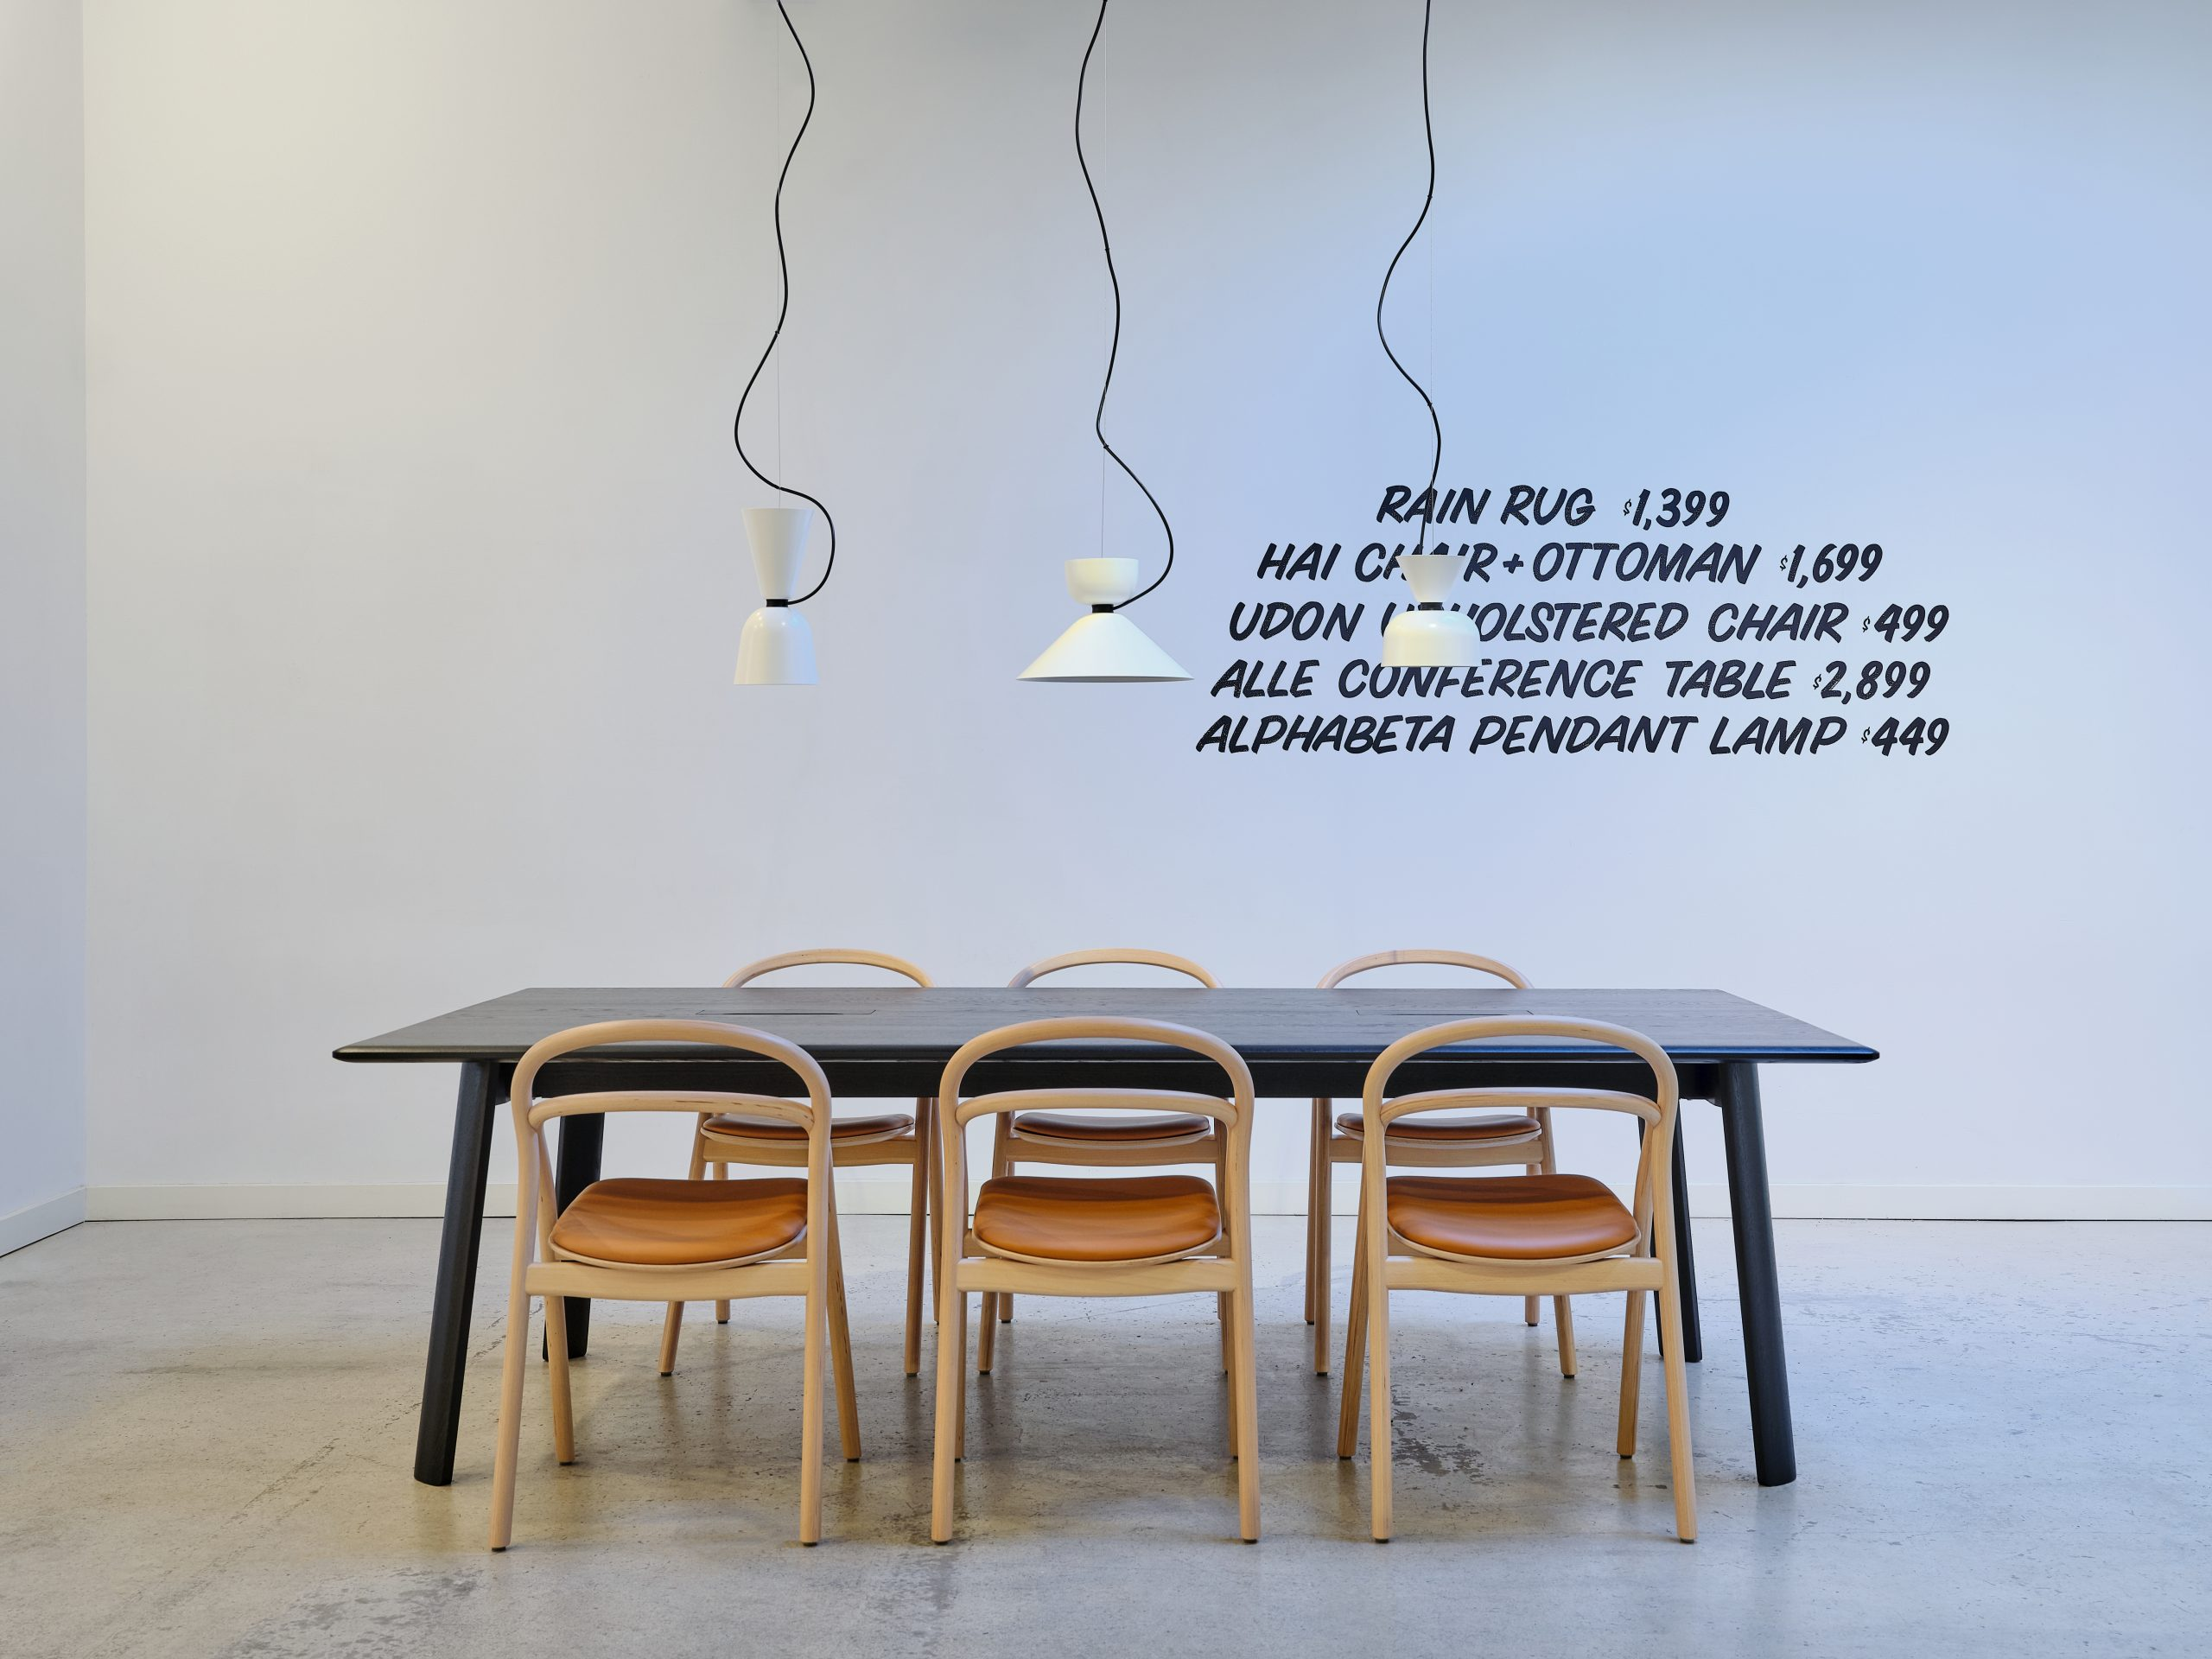 Installation view of lights over a table at Hem